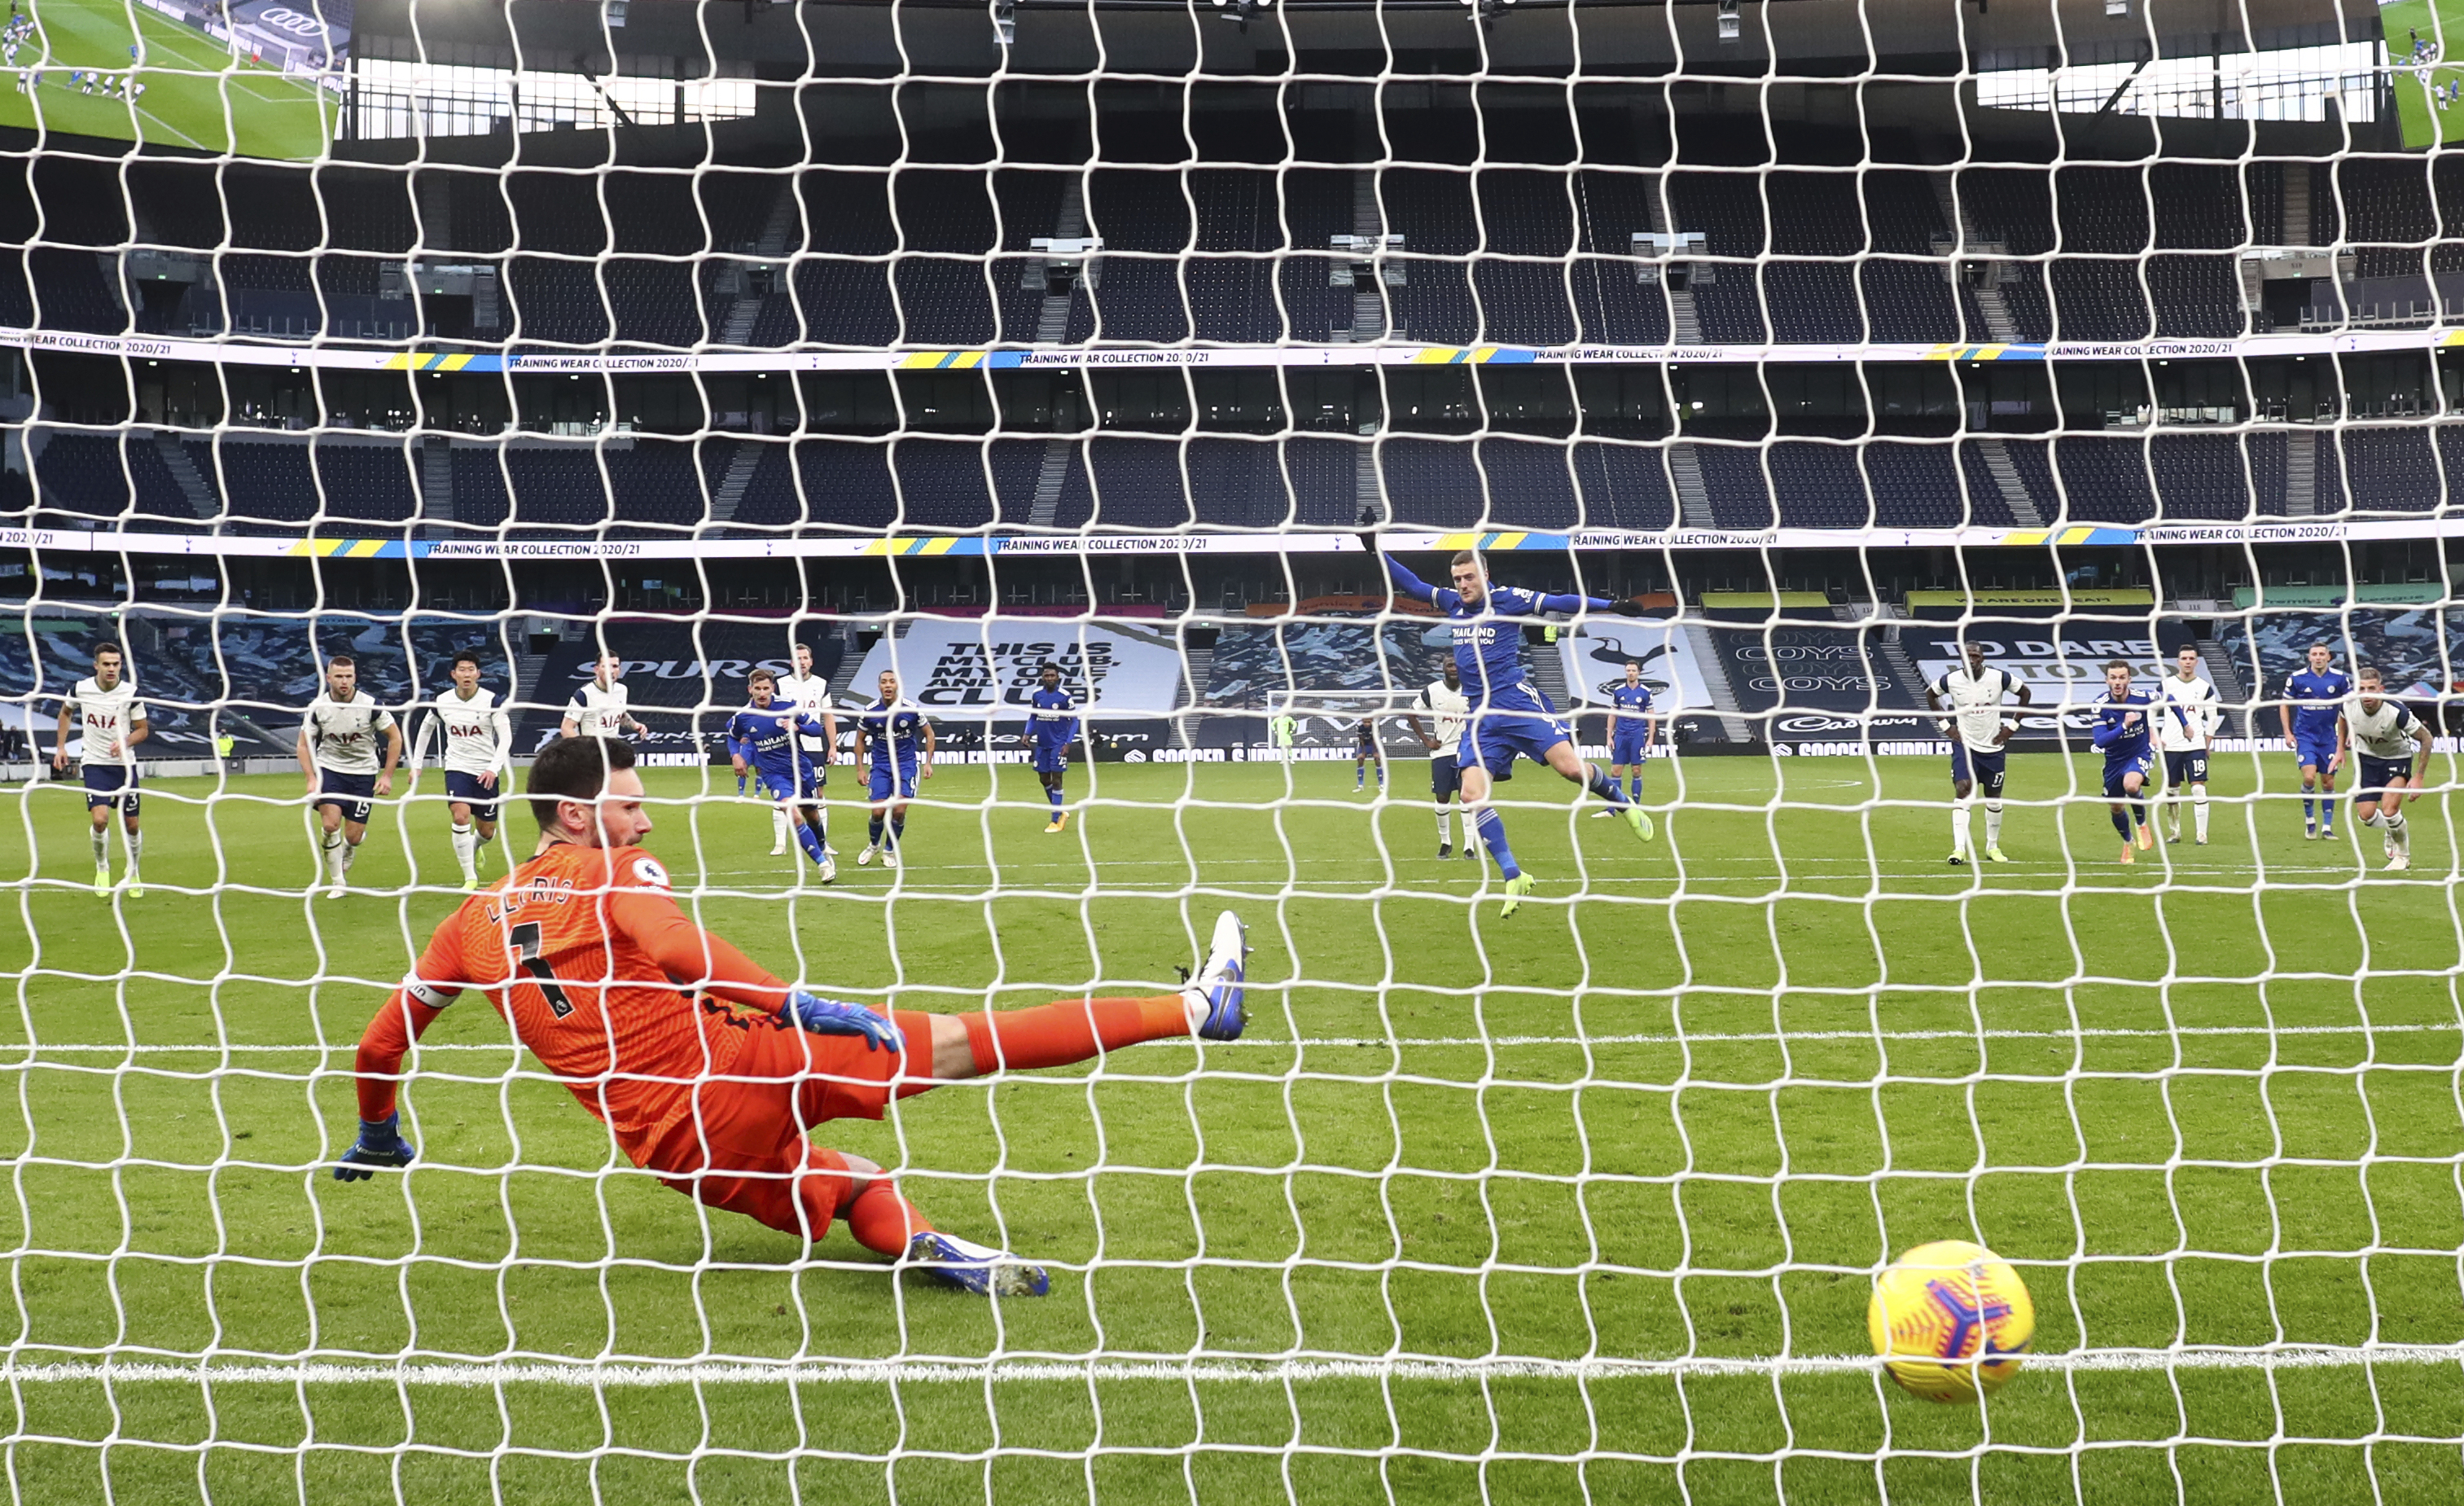 Leicester's Jamie Vardy shoots and scores from the penalty sport for the opening goal of the game during the English Premier League soccer match between Tottenham Hotspur and Leicester City at the White Hart Lane stadium in London, Sunday, Dec., 20 2020. (Julian Finney/ Pool via AP)